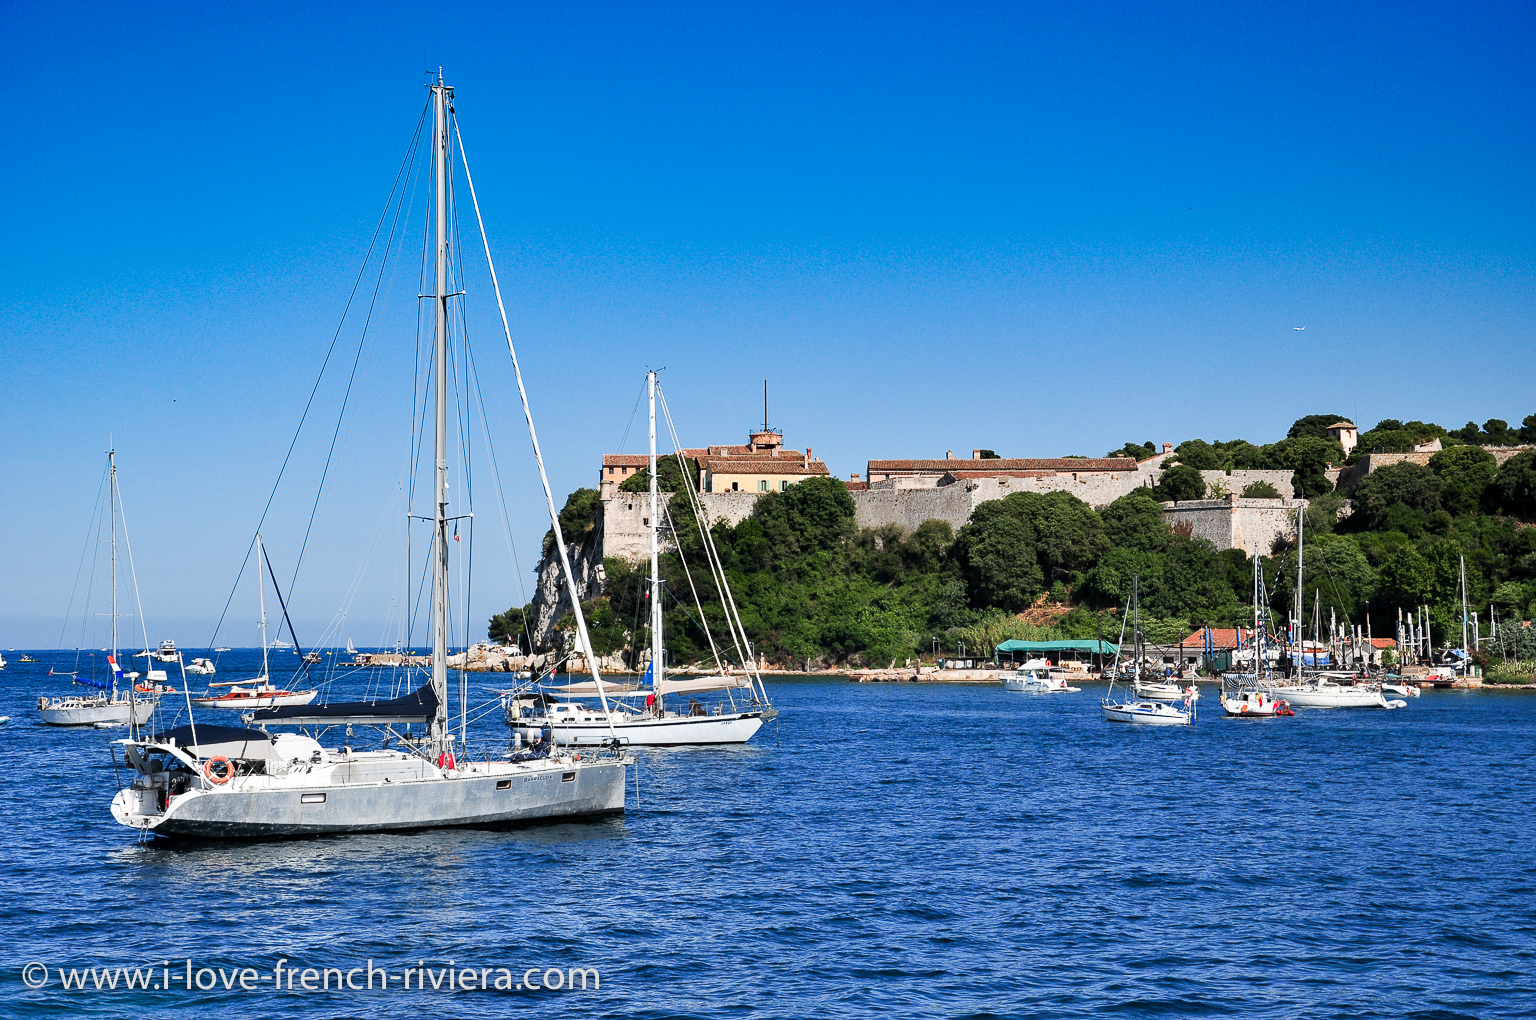 The Lérins Islands, Cannes, St Raphael, St Tropez and other beautiful places are close to our holiday accommodation ...